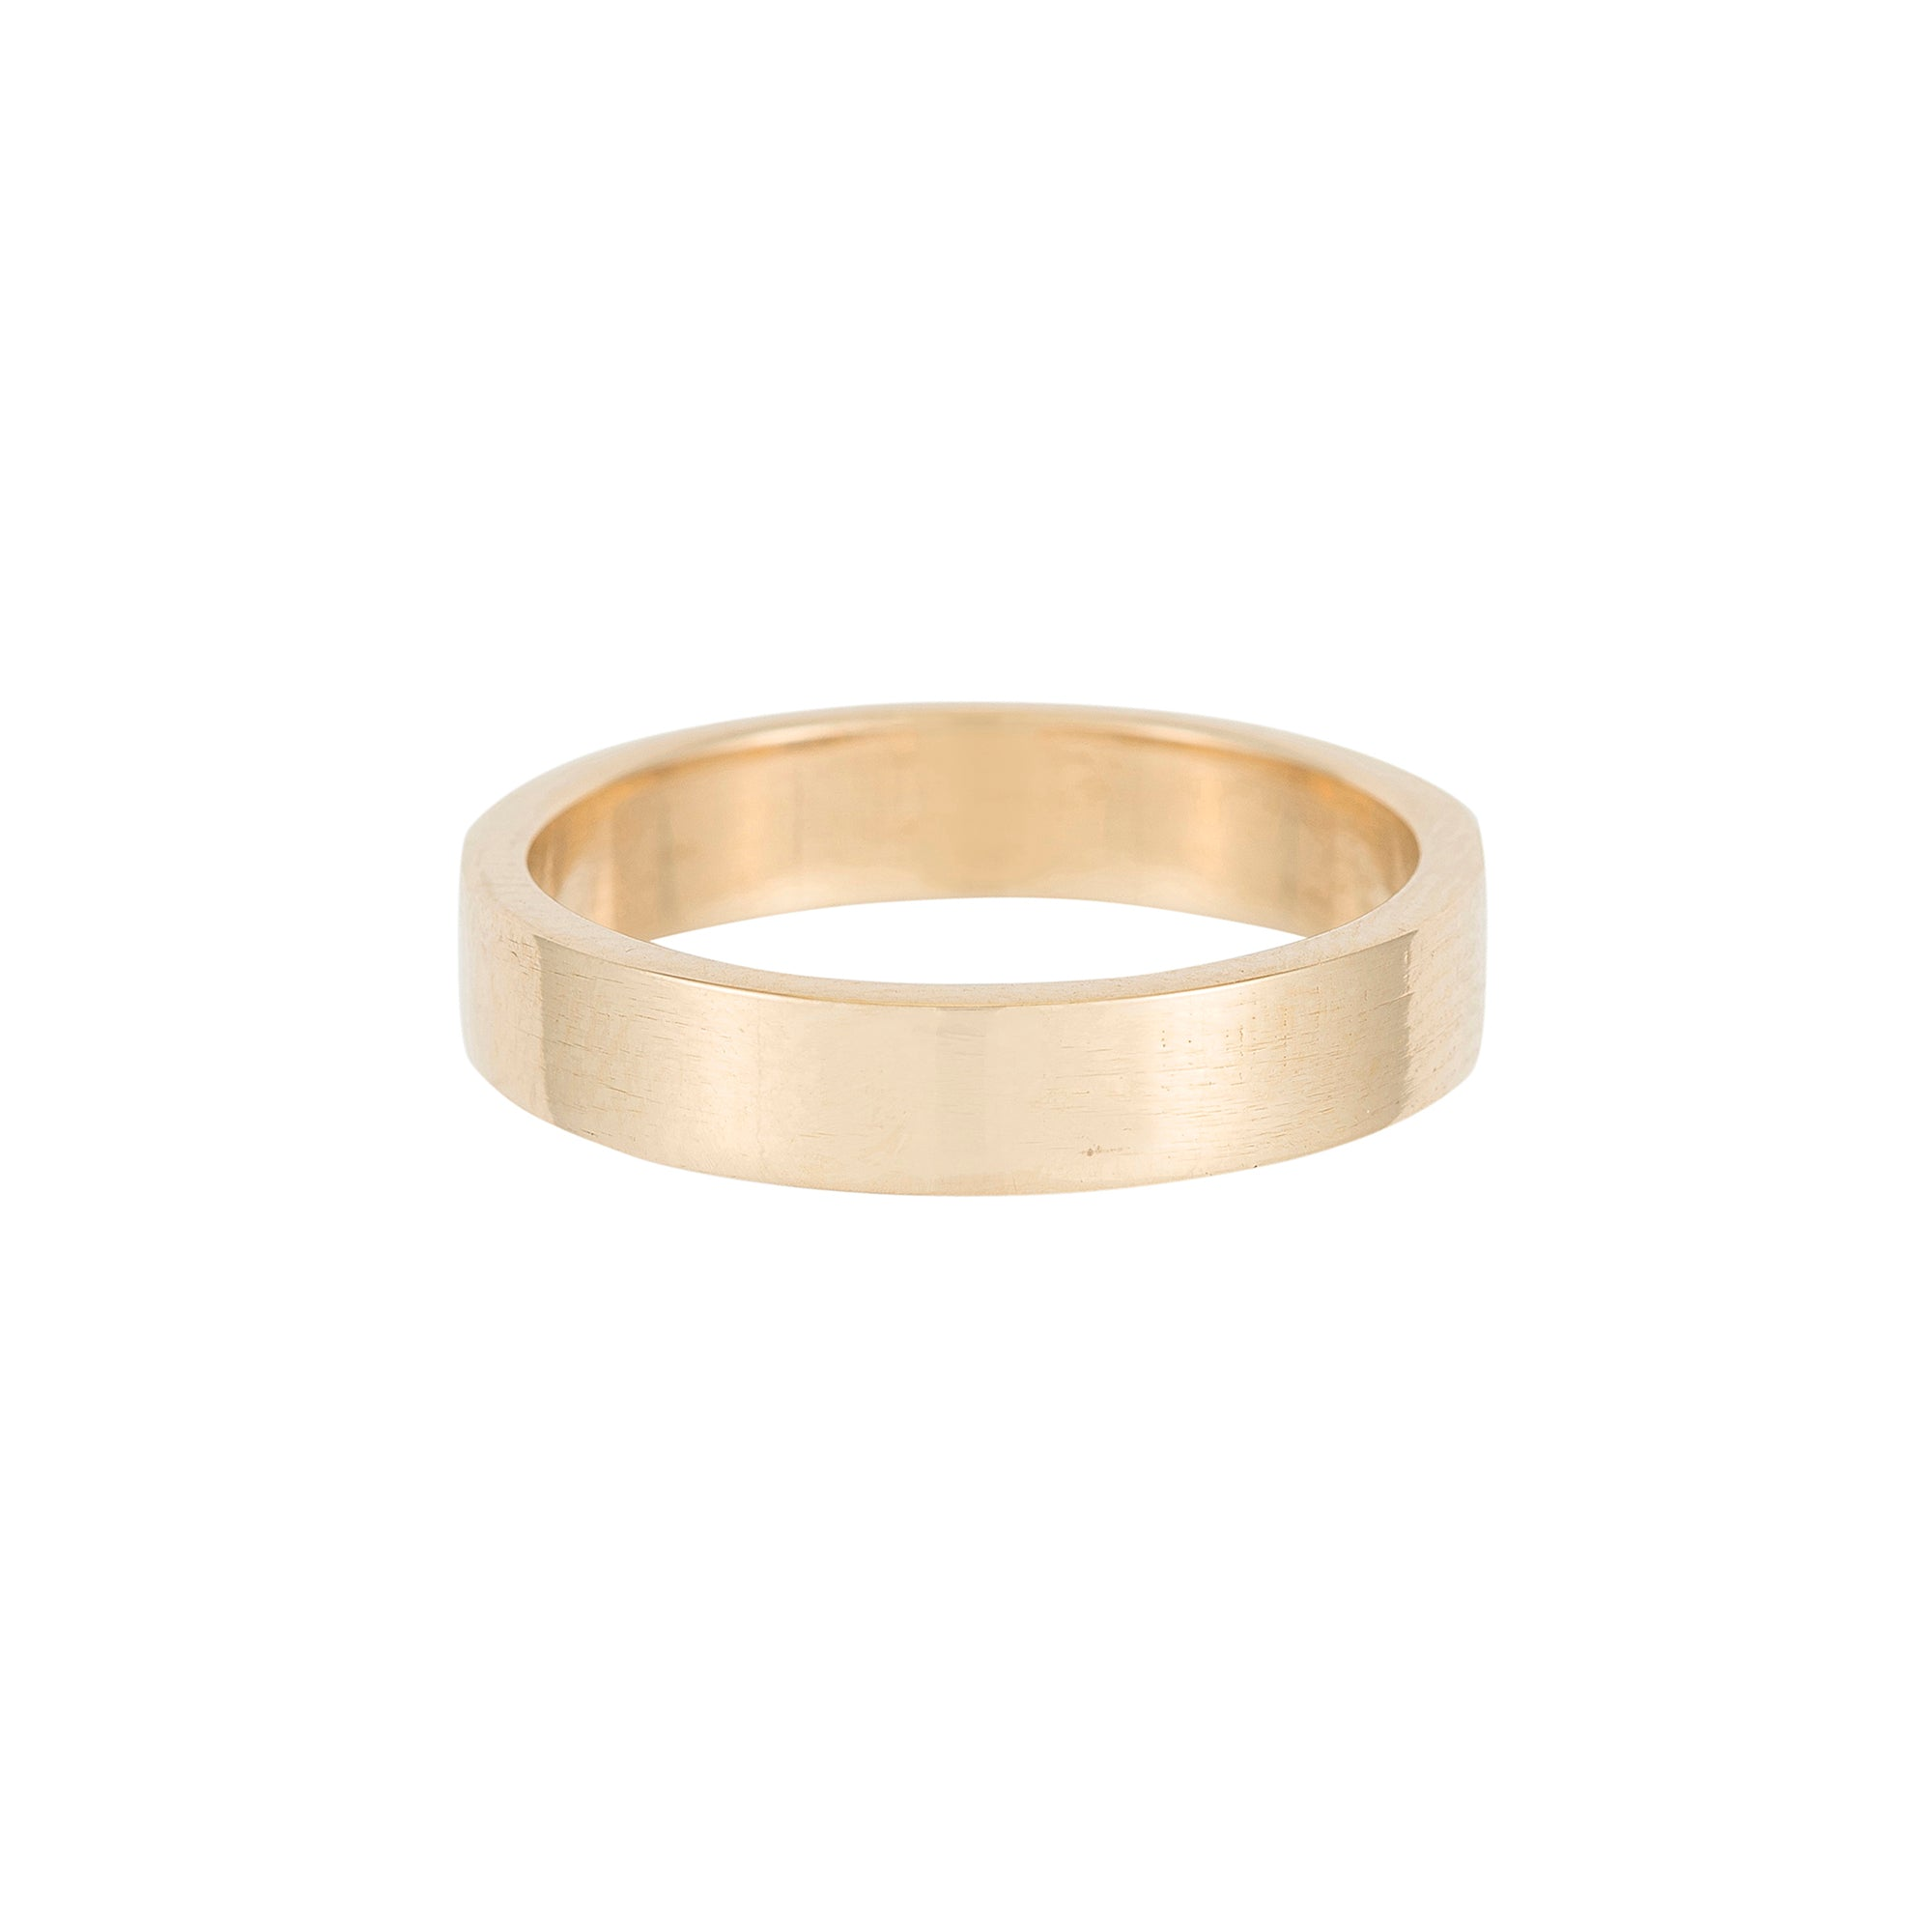 4mm Basic Band by Jennie Kwon for Broken English Jewelry